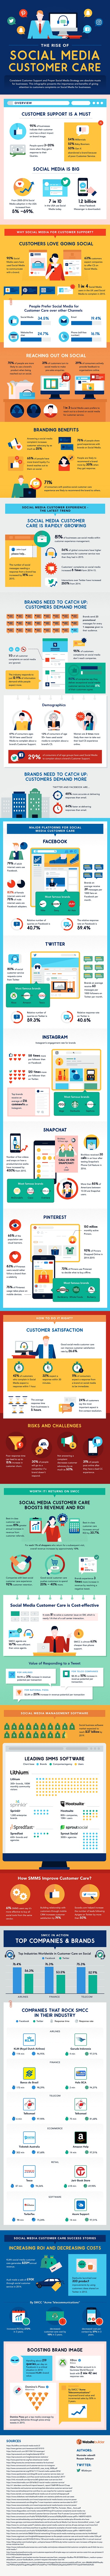 The Rise of Social Media Customer Care Infographic